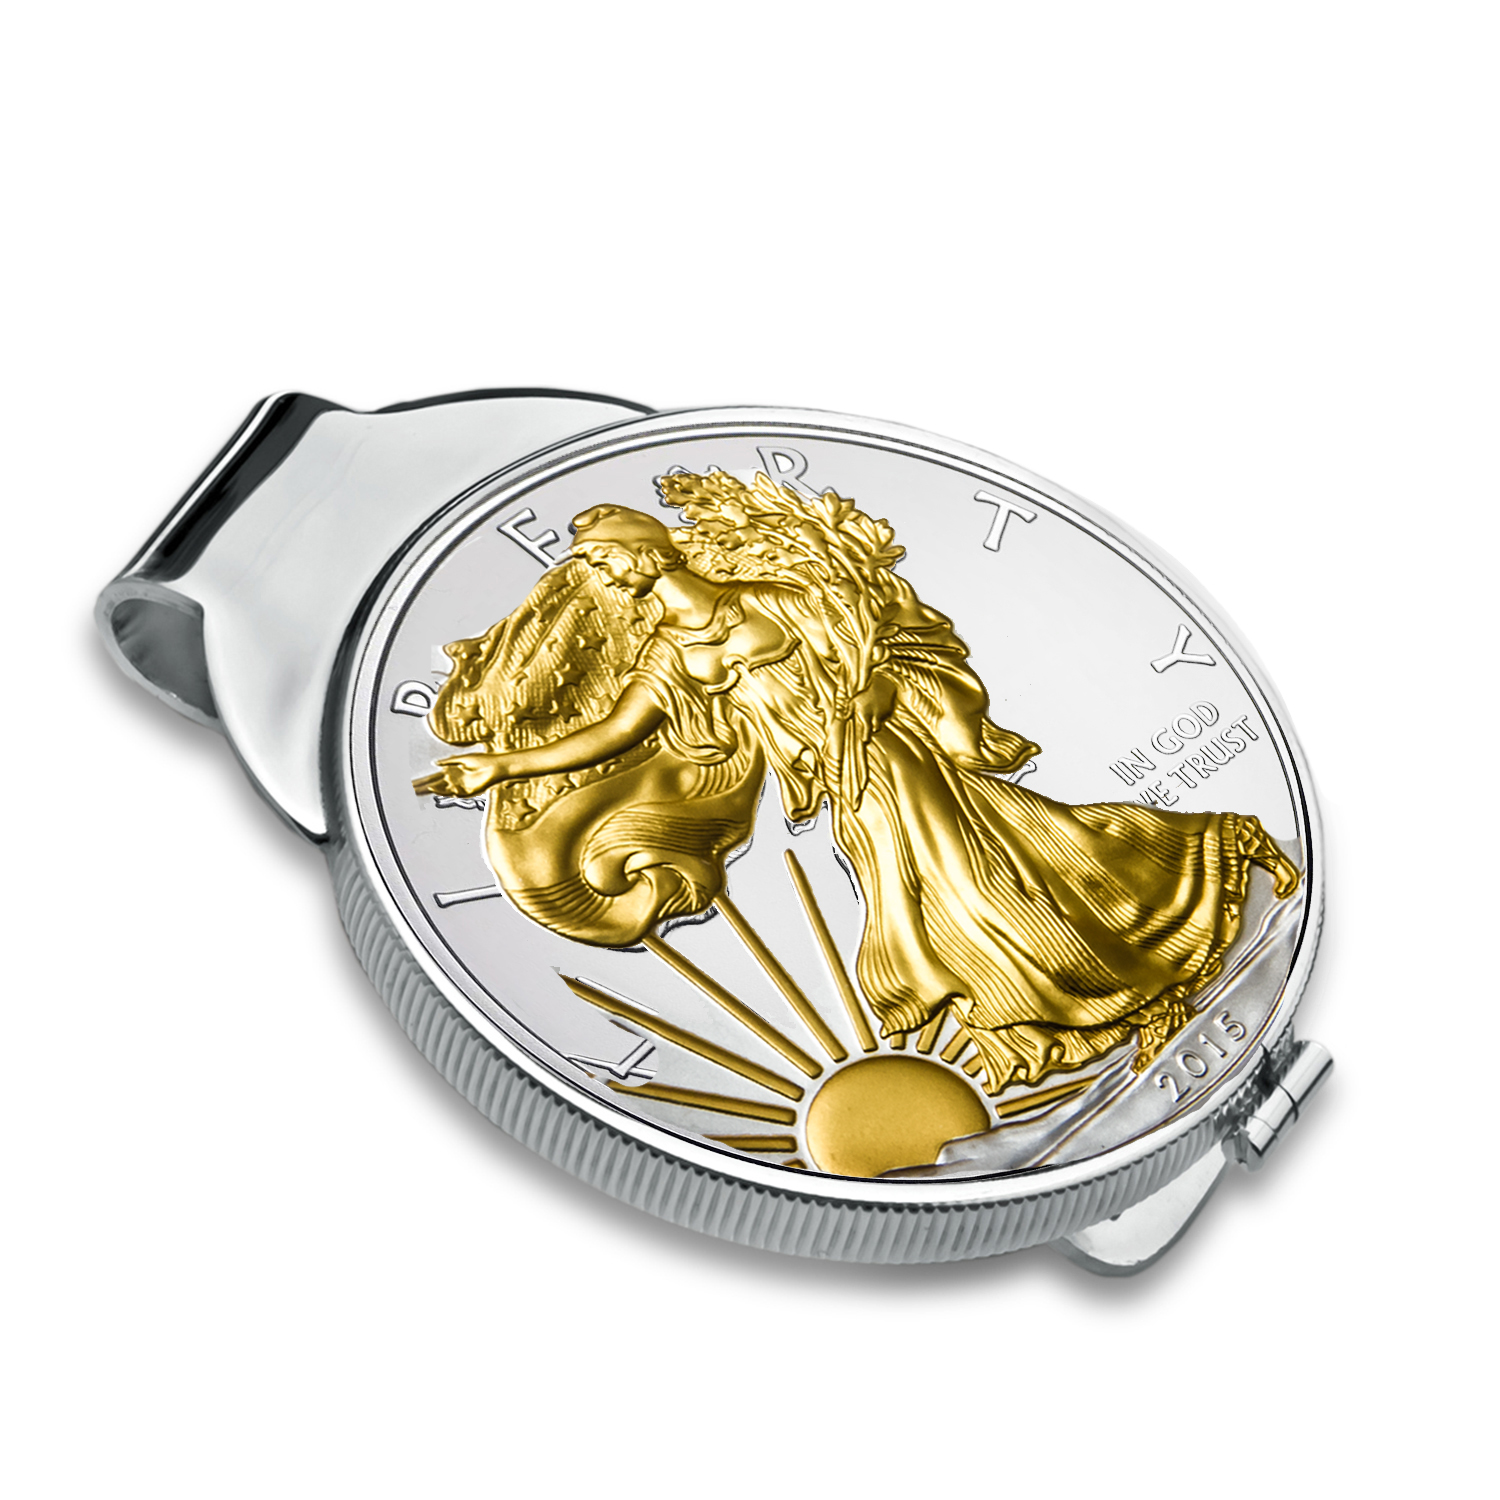 2015 1 oz Silver Gilt Eagle Money Clip (Sterling Silver Polished)